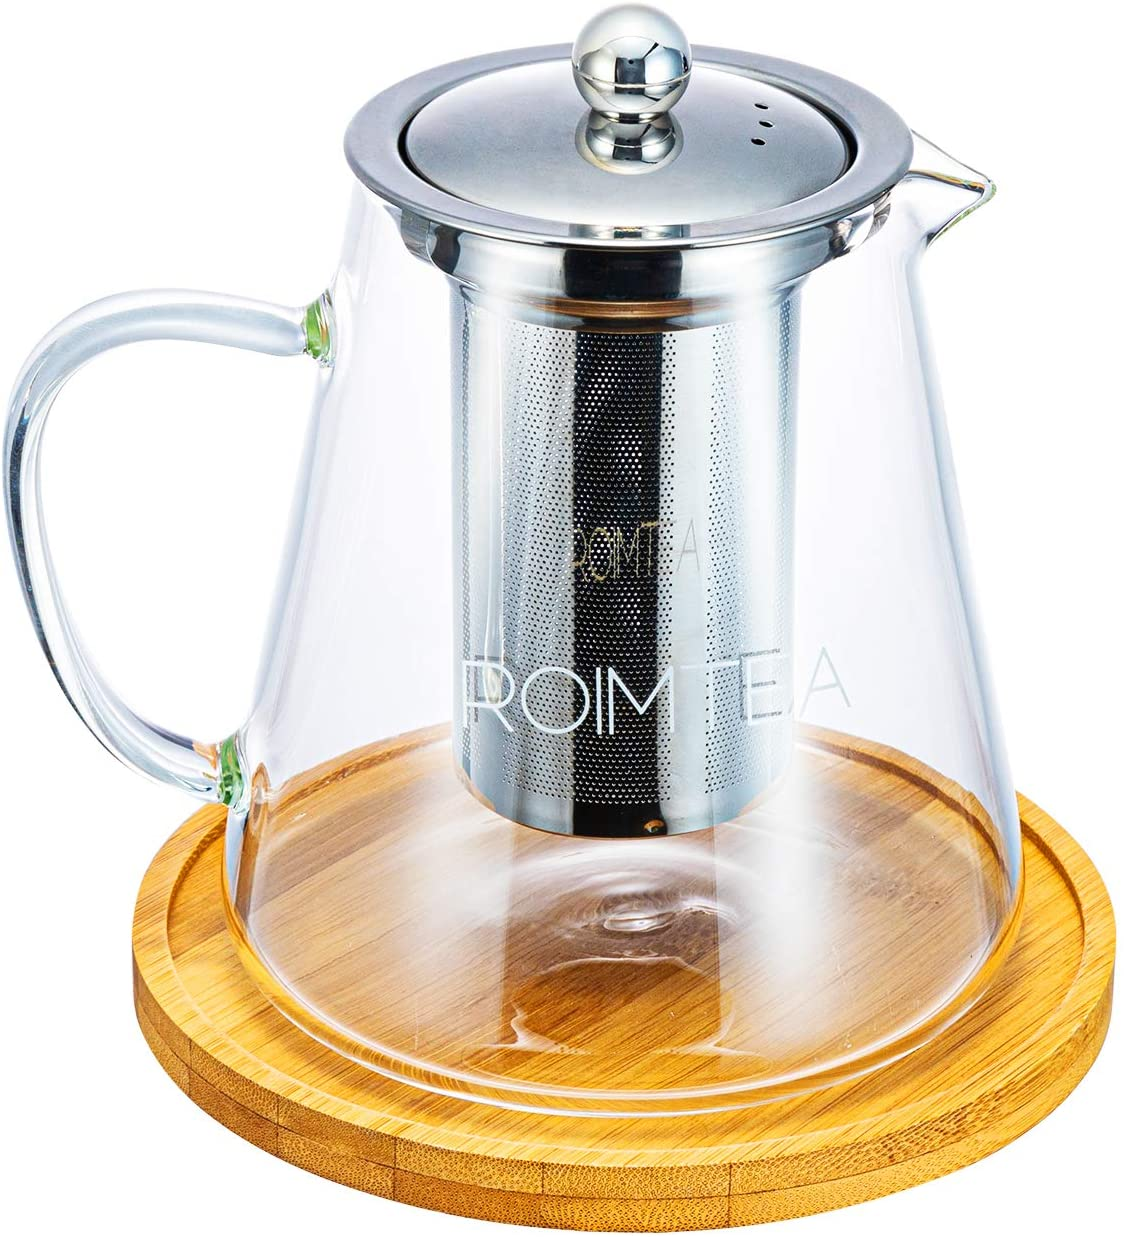 Glass Teapot with Stainless Steel Removable Infuser for Loose Leaf Tea, Tea Maker Brewer, Bonus Tea Kettle & Infuser Coaster, Microwave & Stovetop Safe, Gift Box, 950ml/32oz